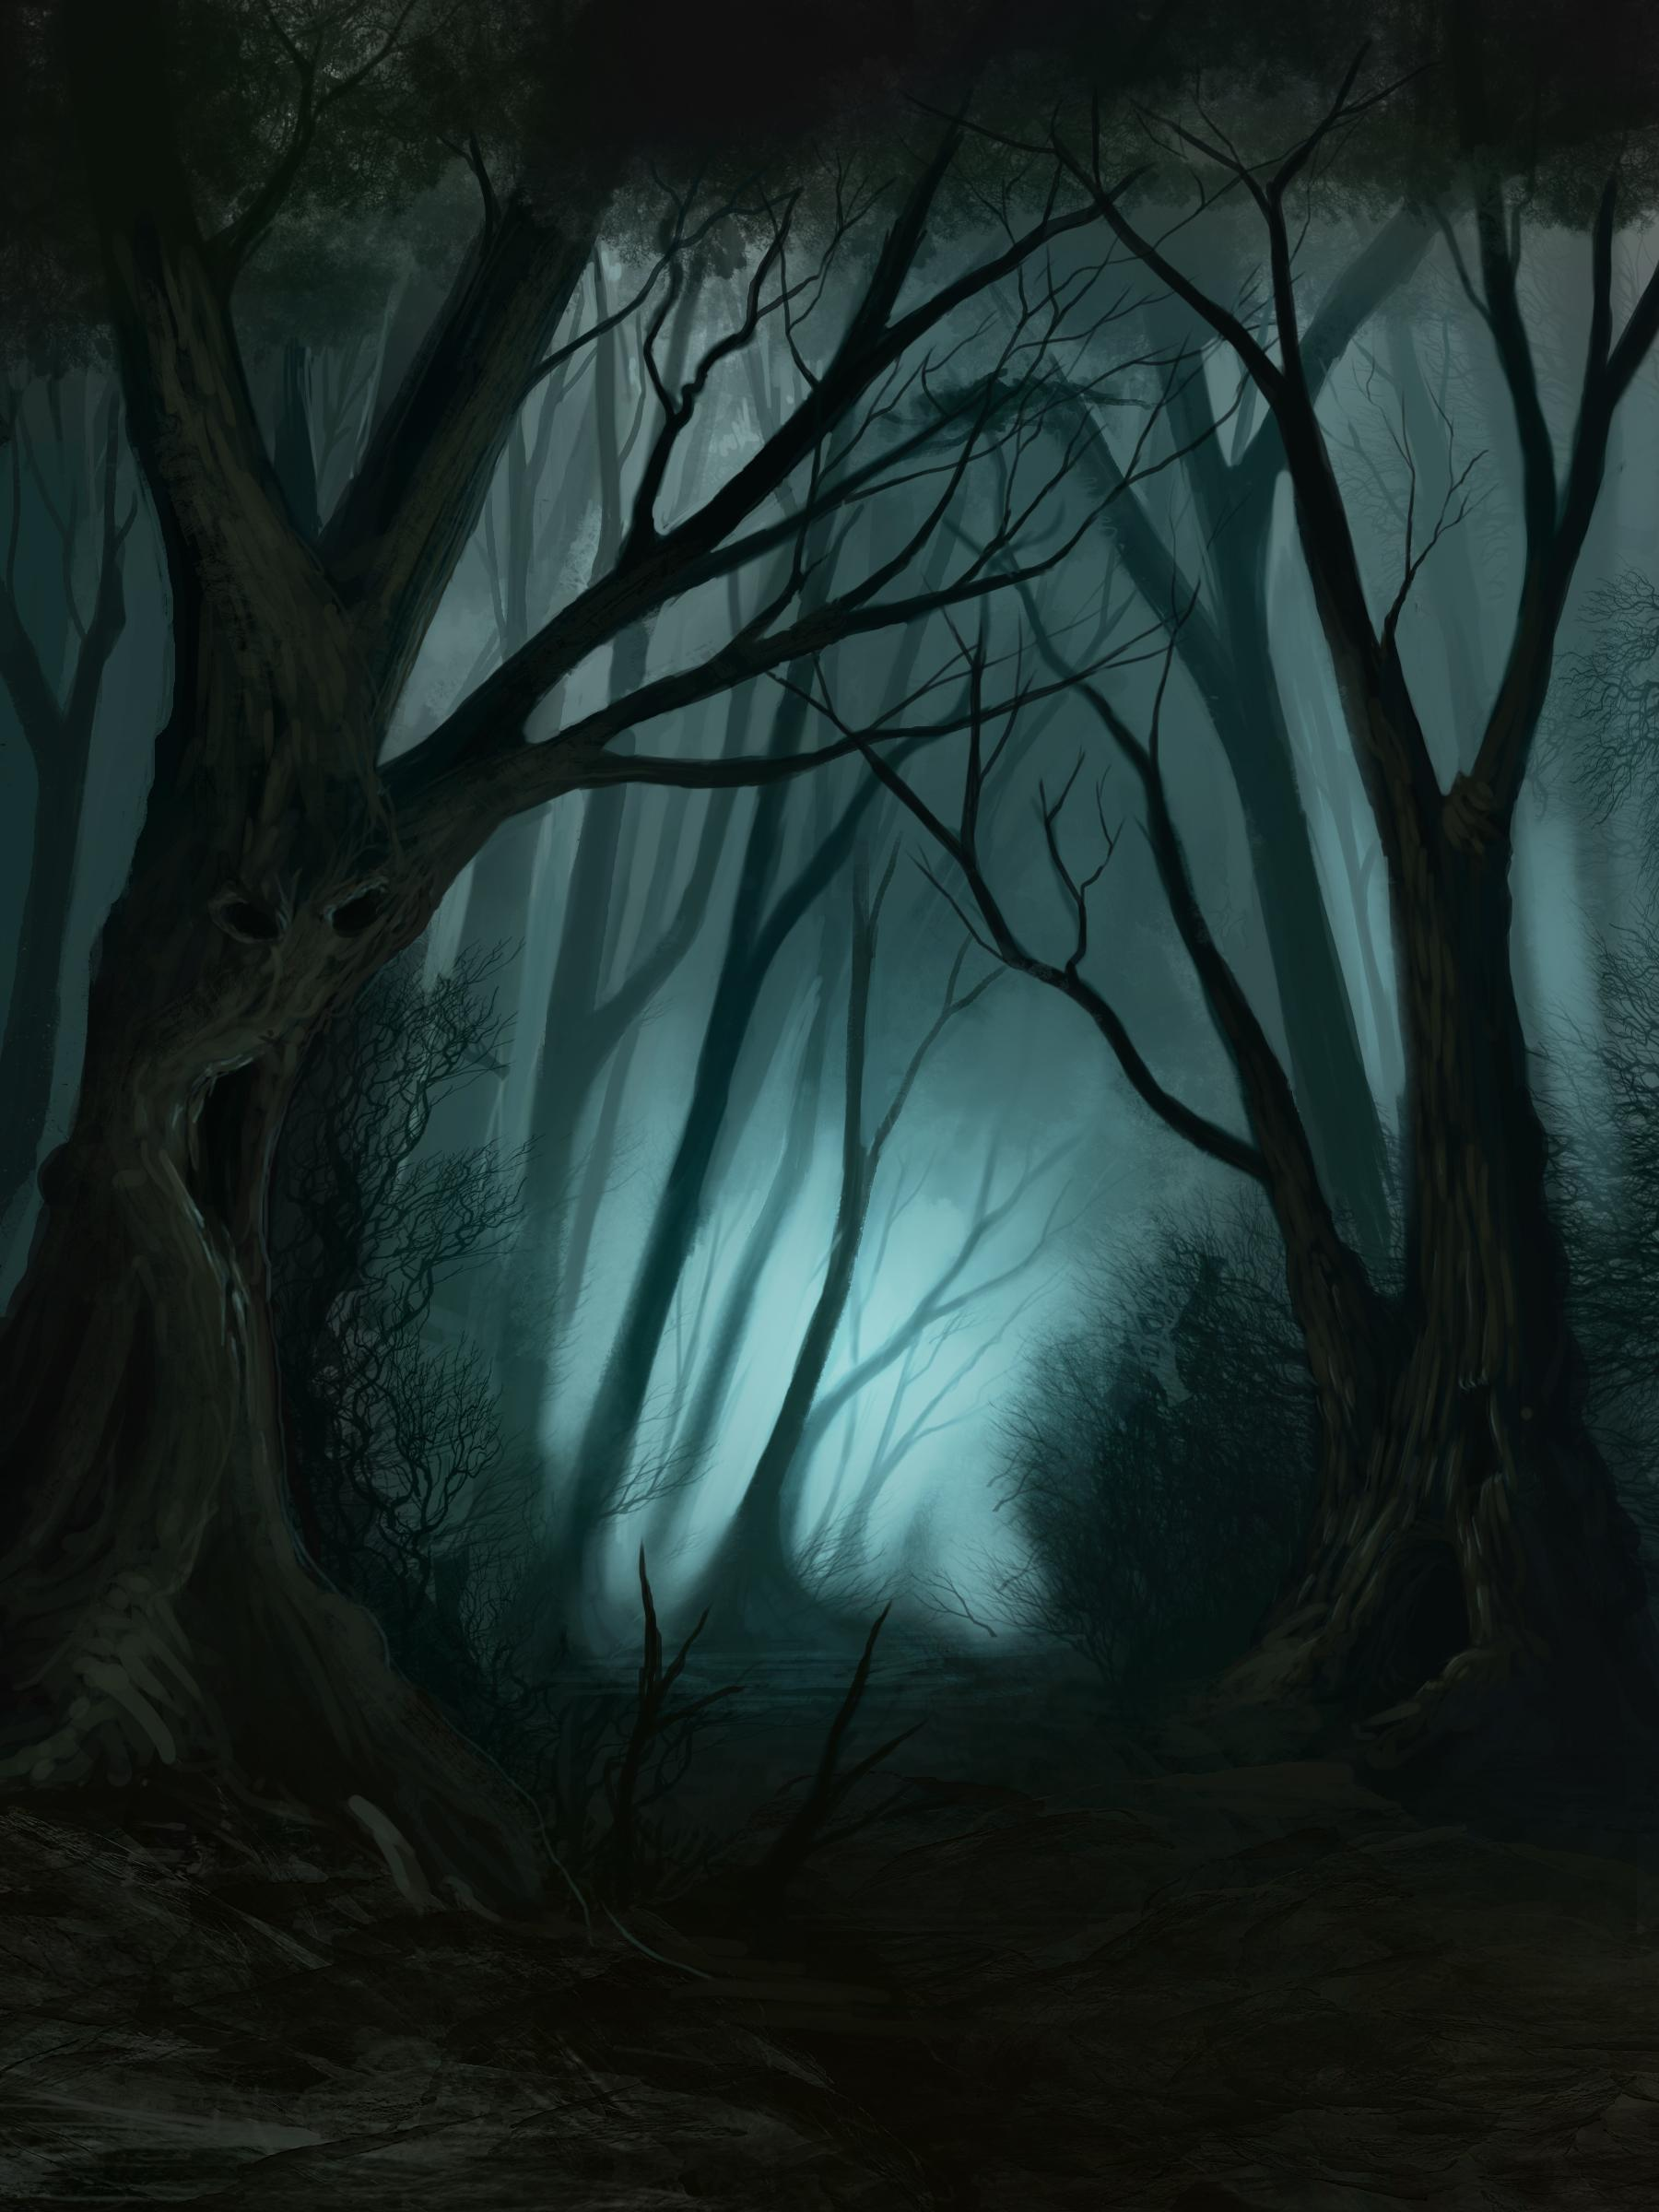 Drawn forest spooky Forest Pinterest source Afficher